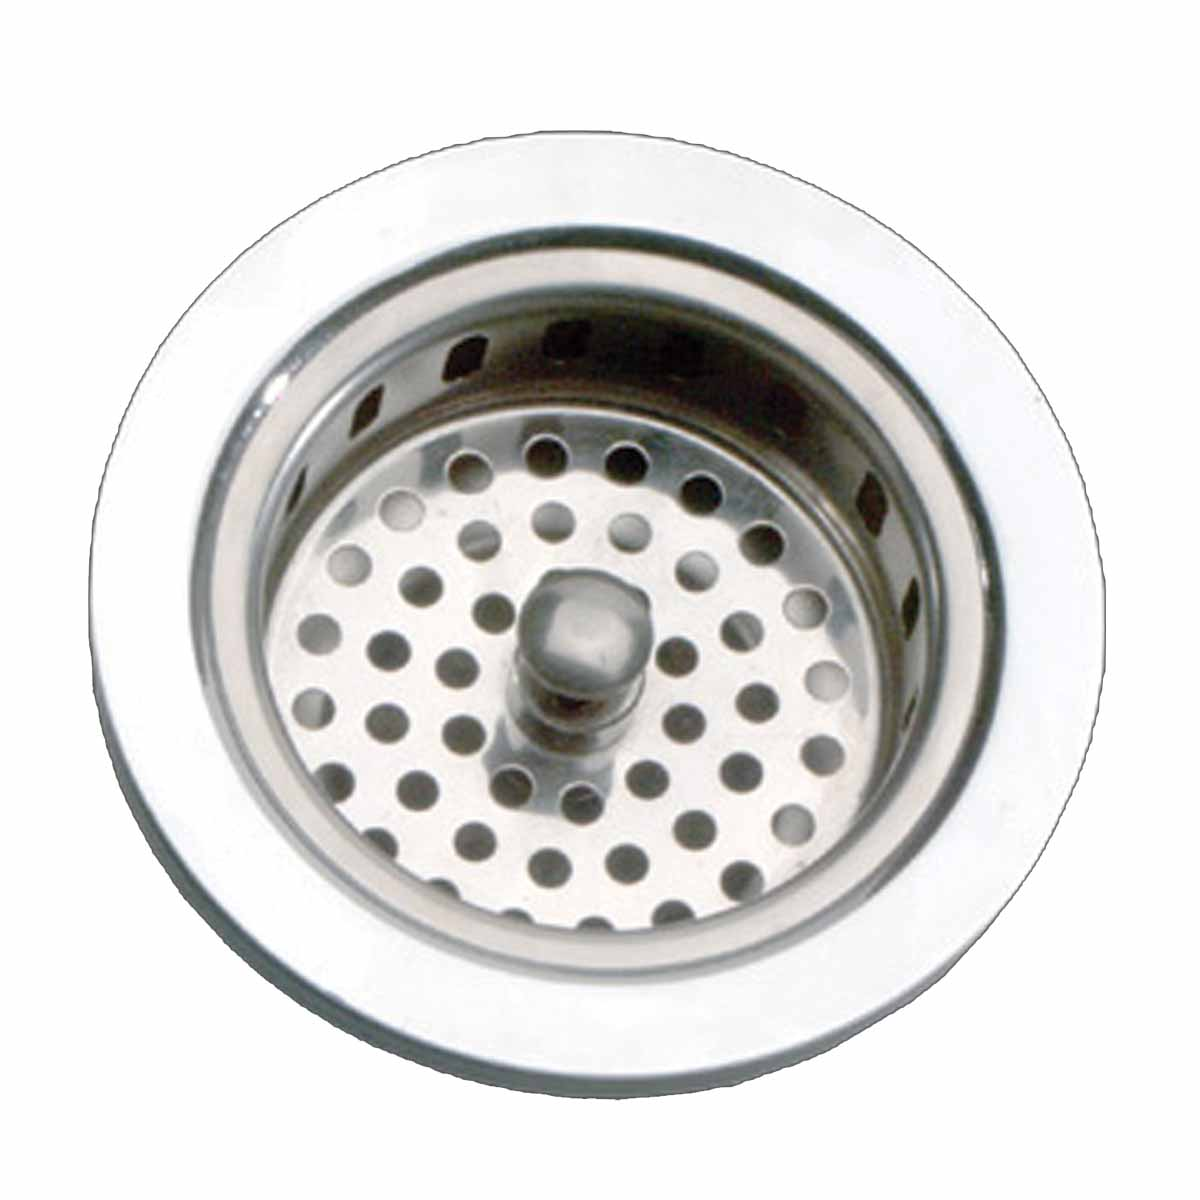 Kitchen sink strainer 3 5 6 dia solid brass chrome finish for 3 kitchen sink strainer